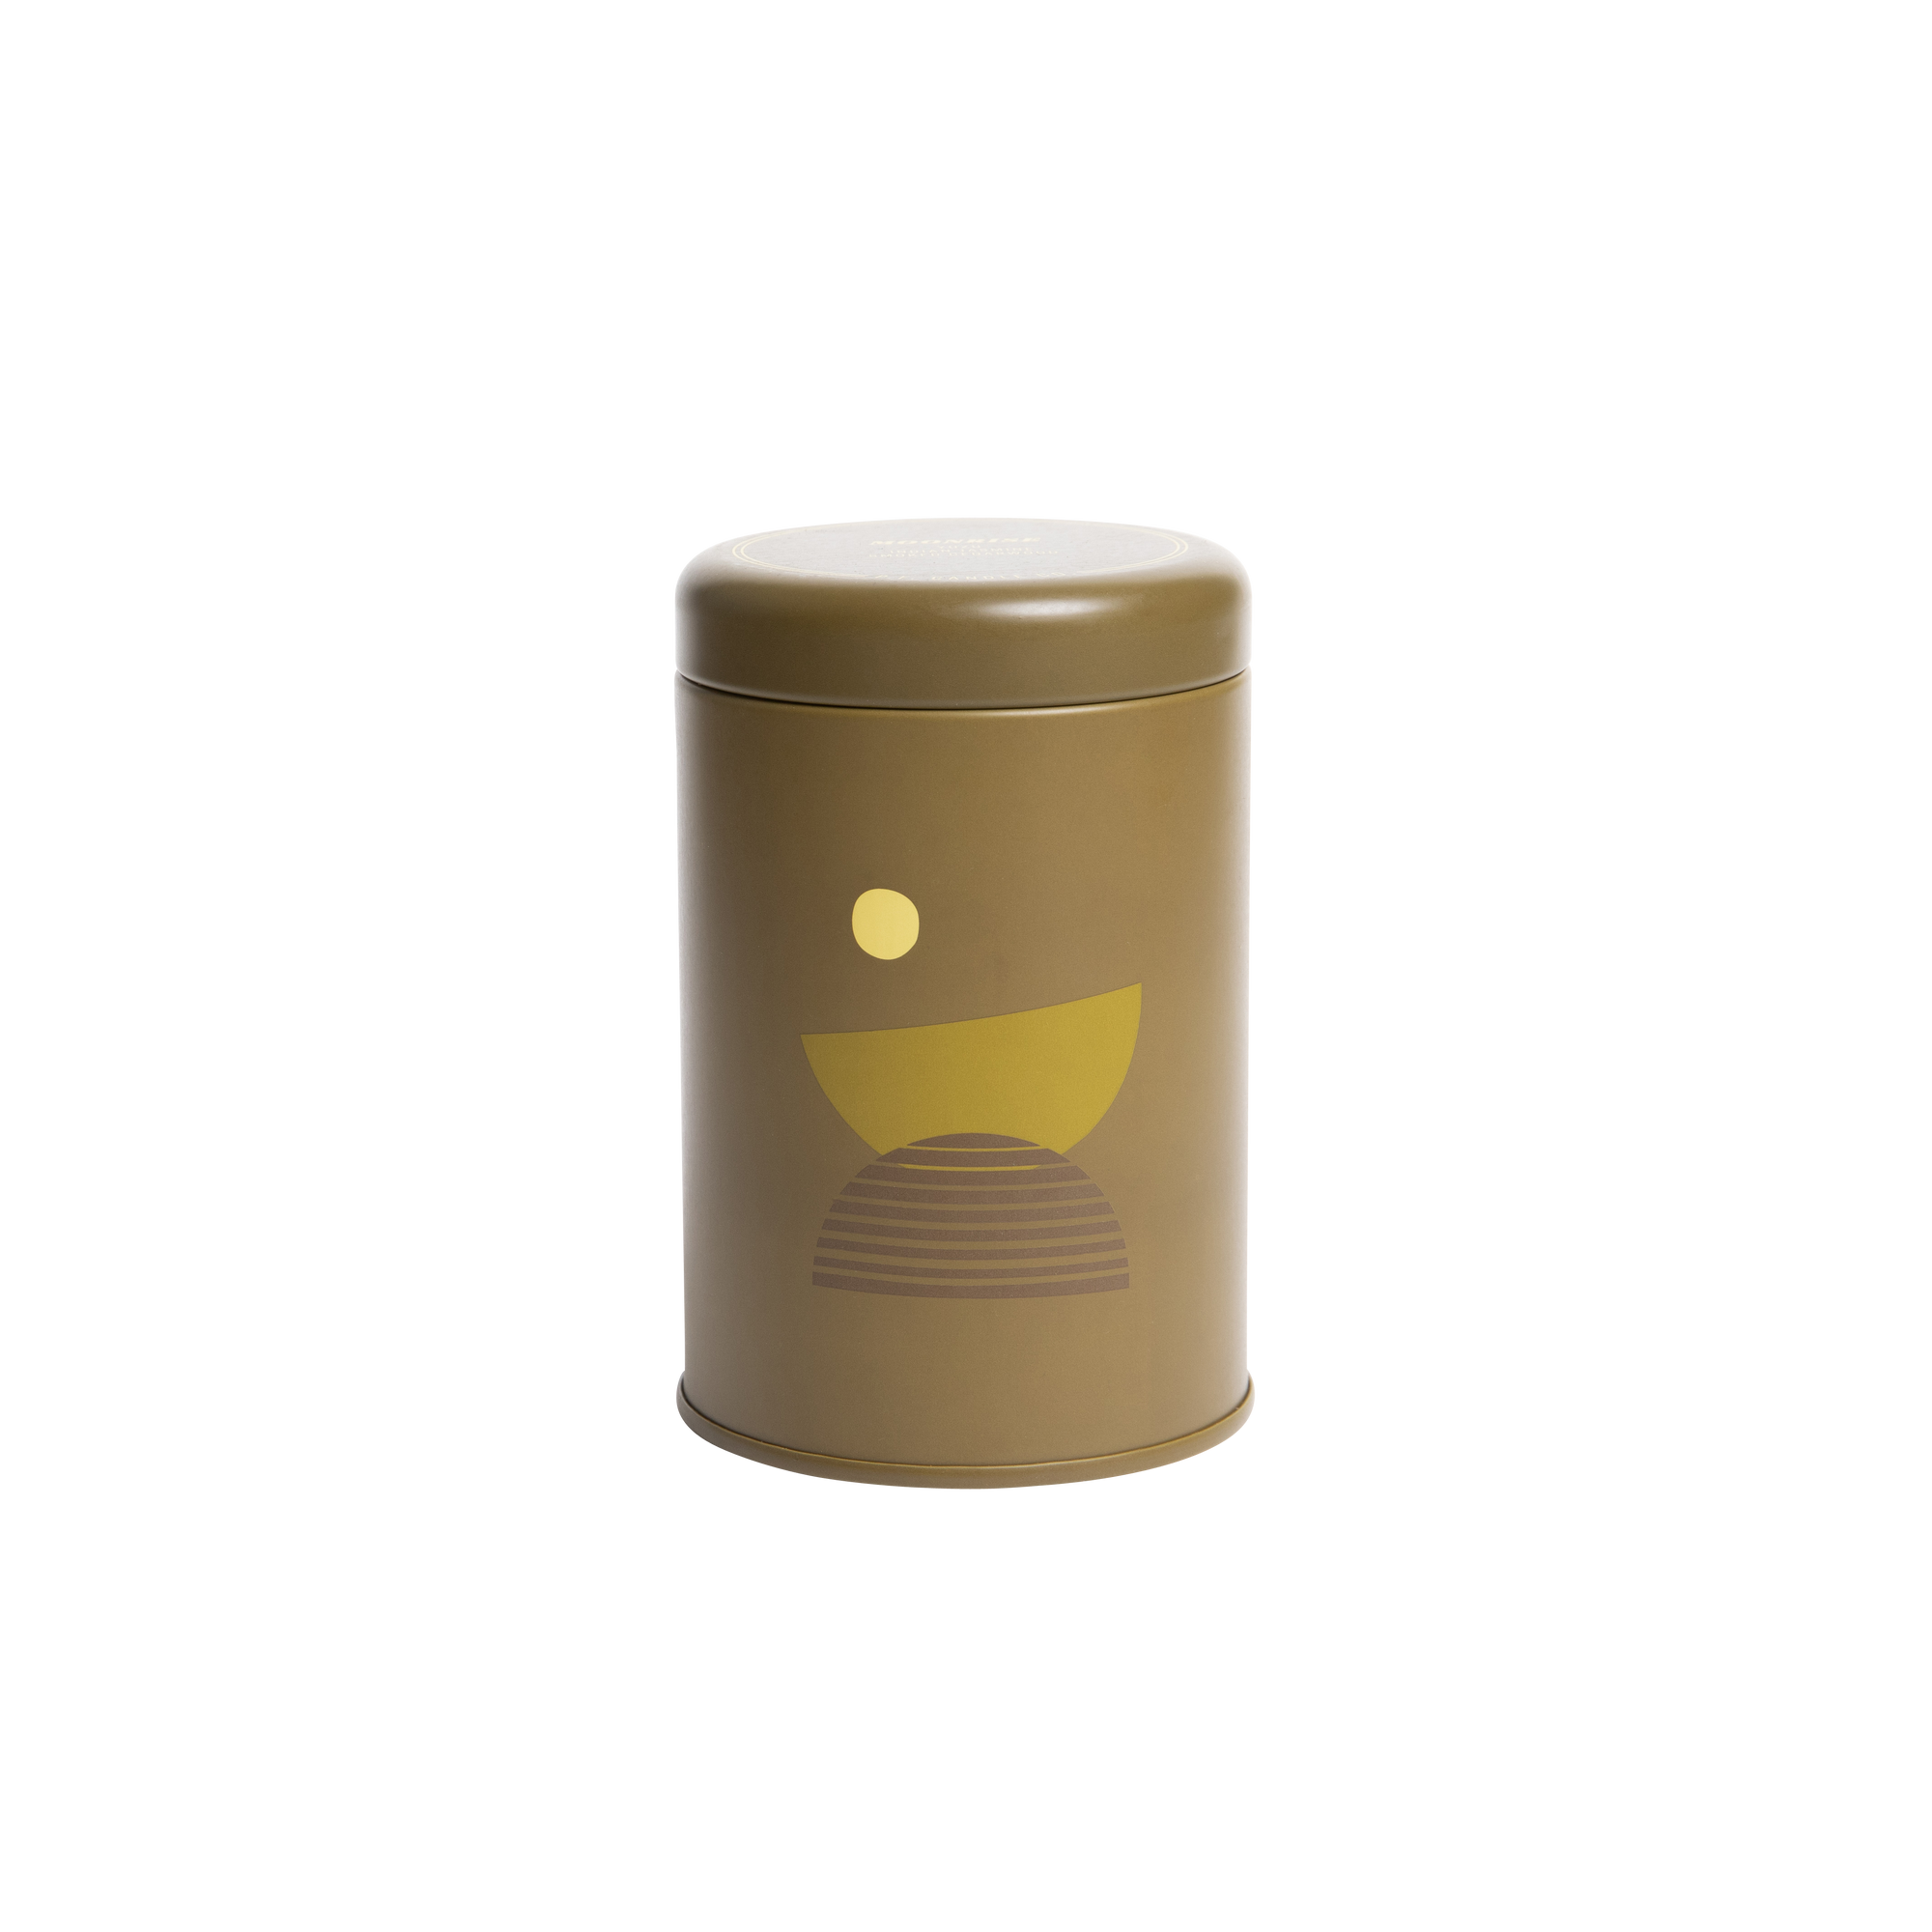 P.F. Candle Co. - *NEW* Moonrise - 10 oz Sunset Soy Candle